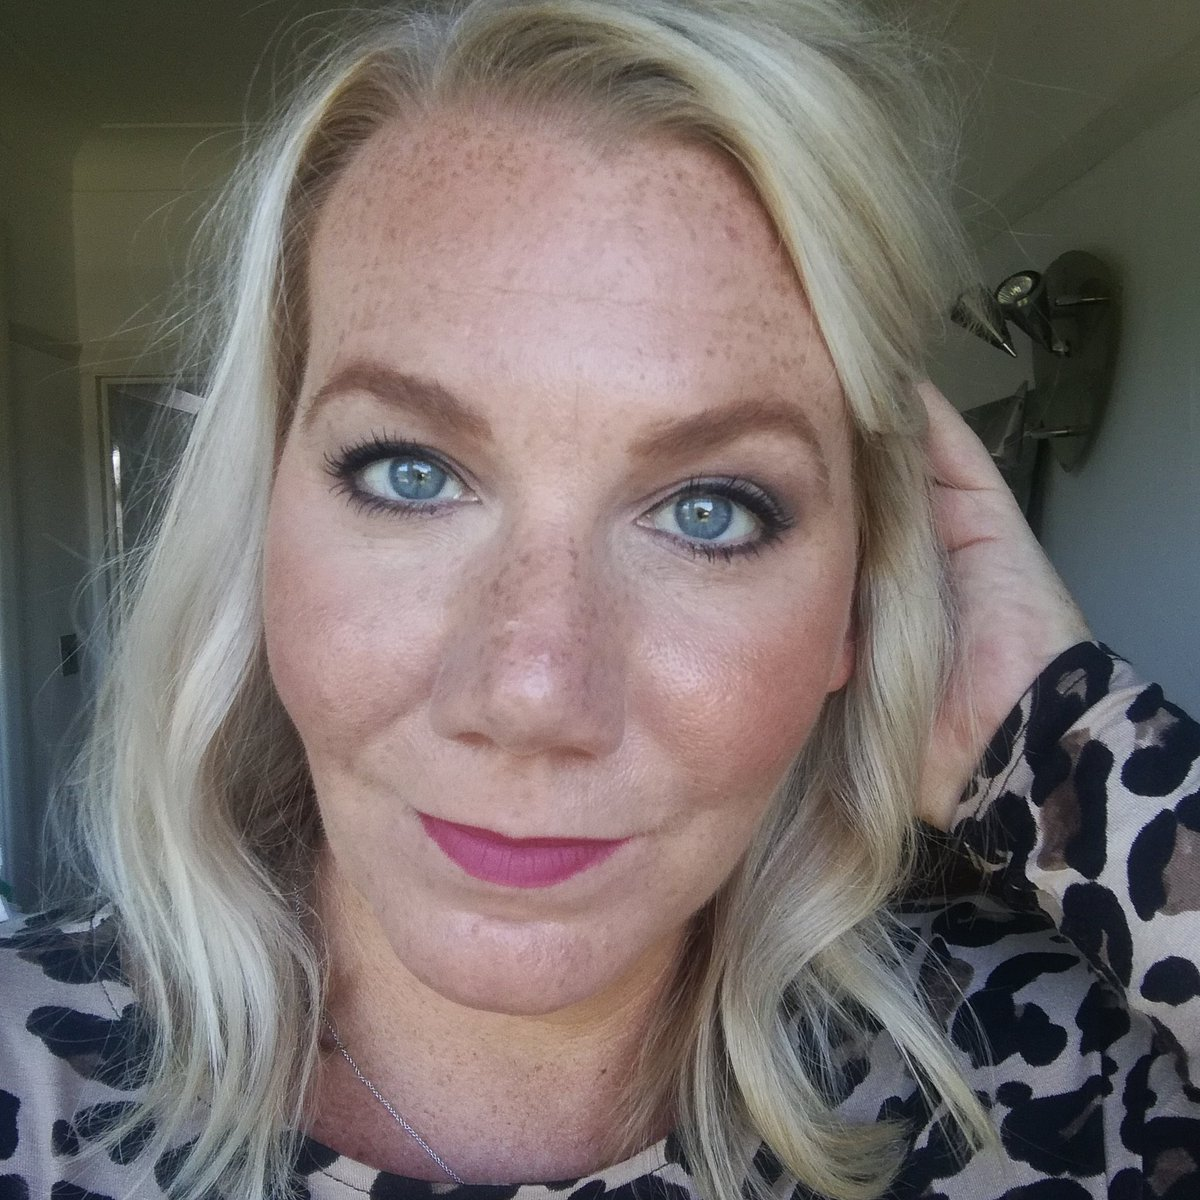 Happy Friday Everyone ! Its a Cat Eye &amp; Leopard Print top kinda day! Details of my #makeup here  https://www. instagram.com/p/BZVmlImBSAa/  &nbsp;   #nofilterneeded<br>http://pic.twitter.com/klqeVP0Xke